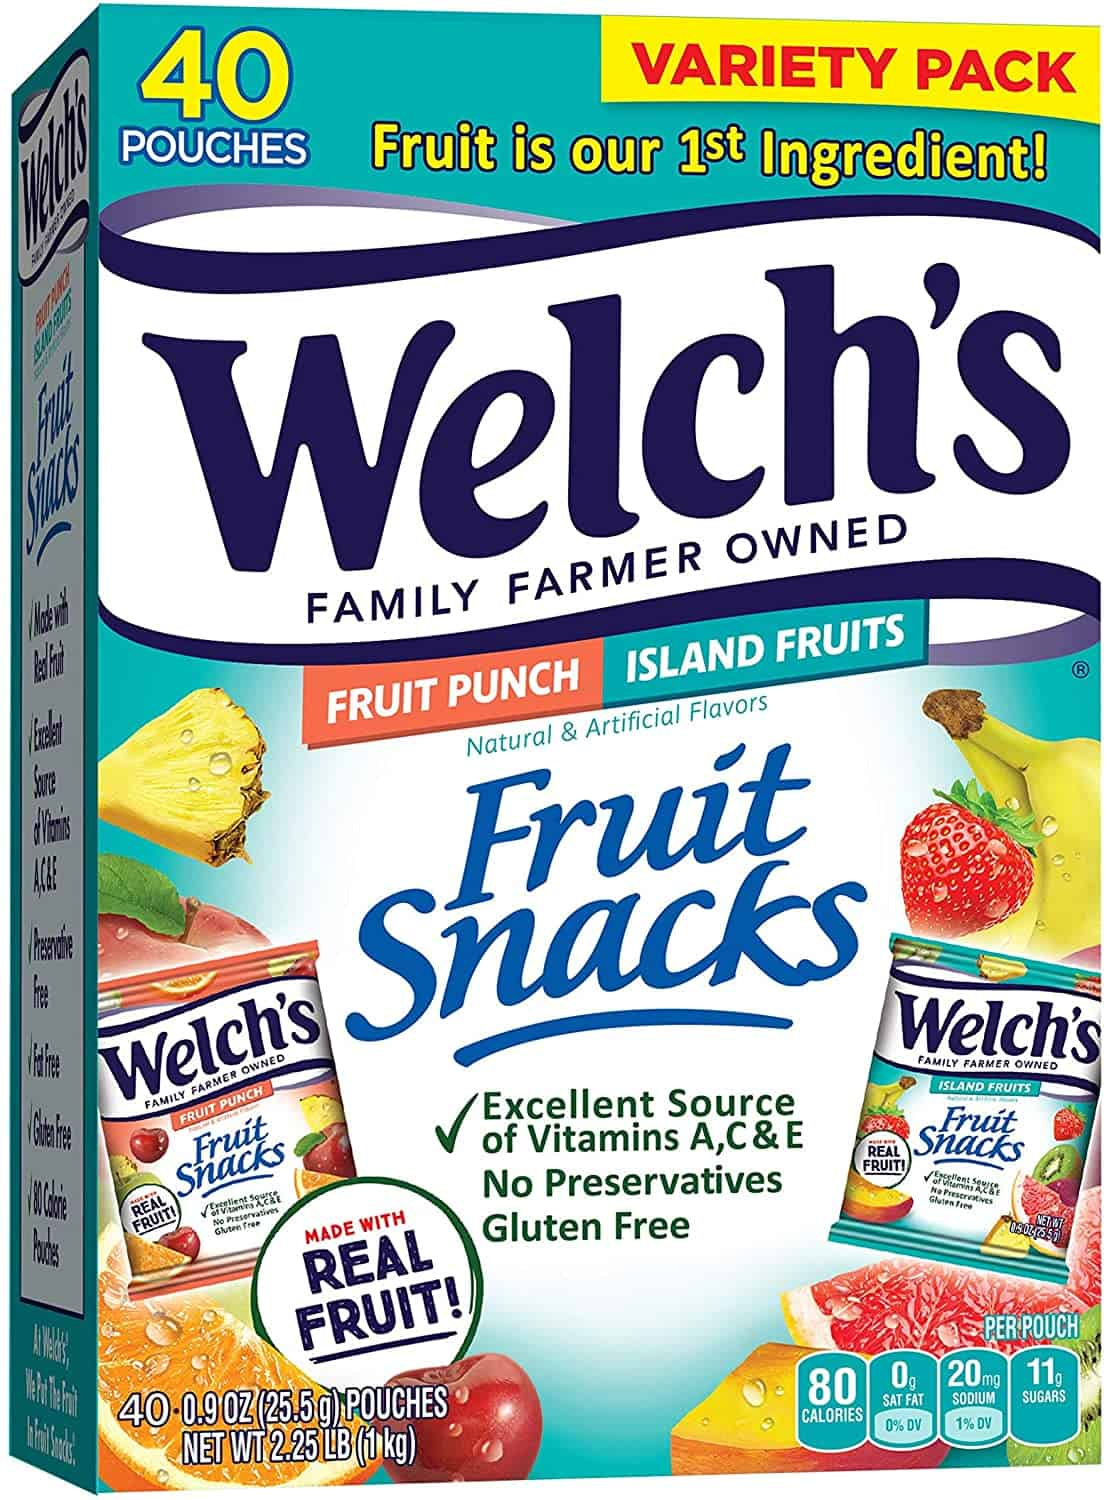 Welch's Fruit Snacks, Fruit Punch & Island Fruits Variety Pack is top 10 healthy snacks from Singapore to bring home, Trending snacks in Singapore